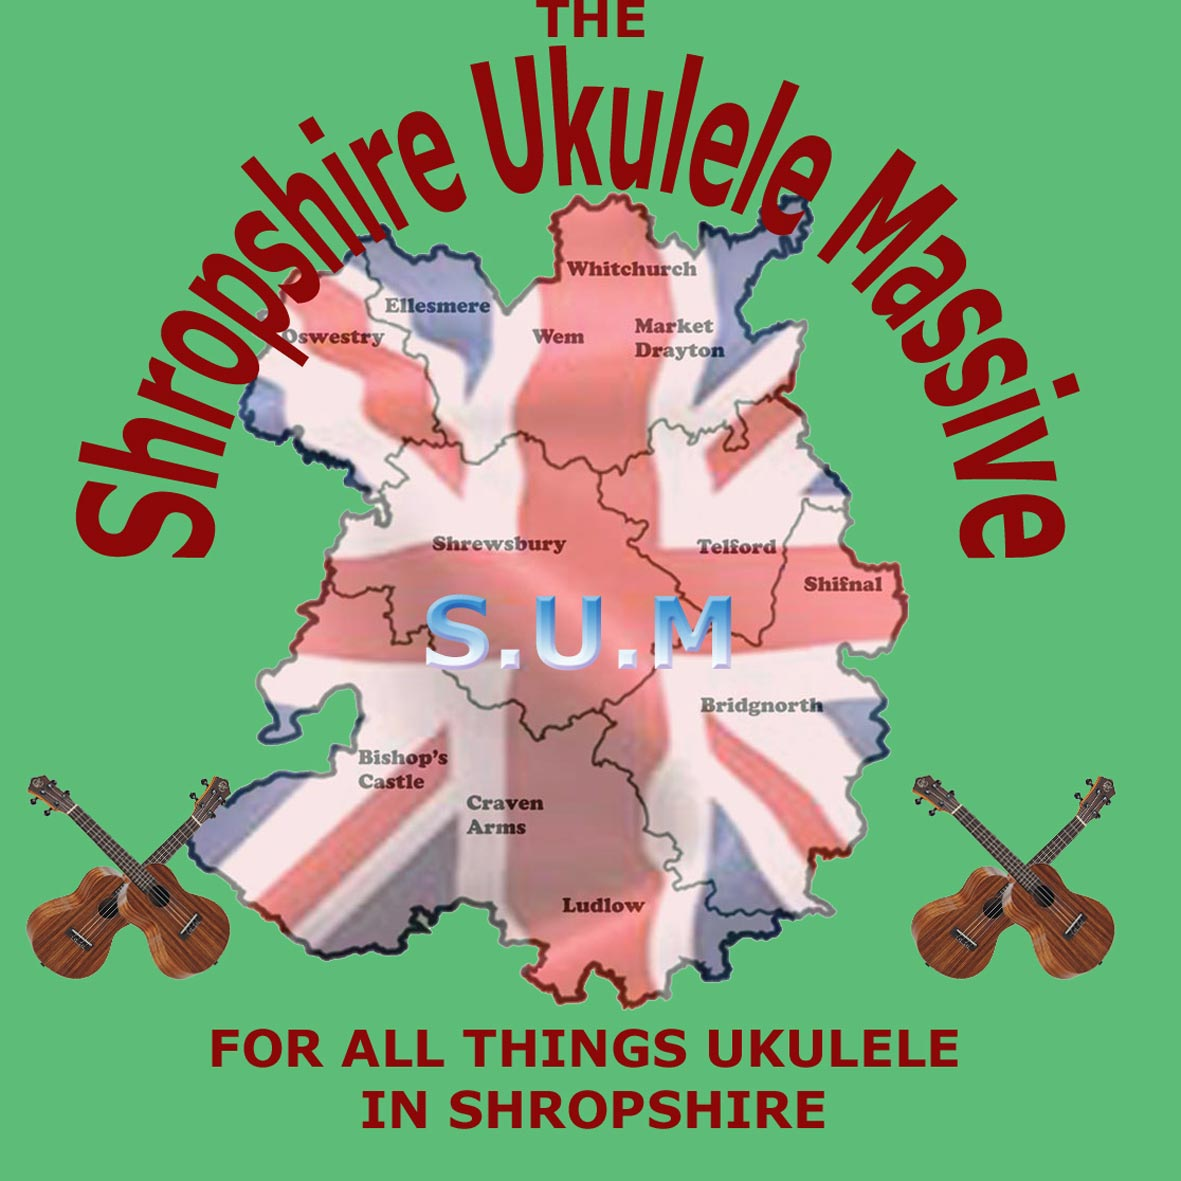 Please click here to go to The Shropshire Ukulele Massive website